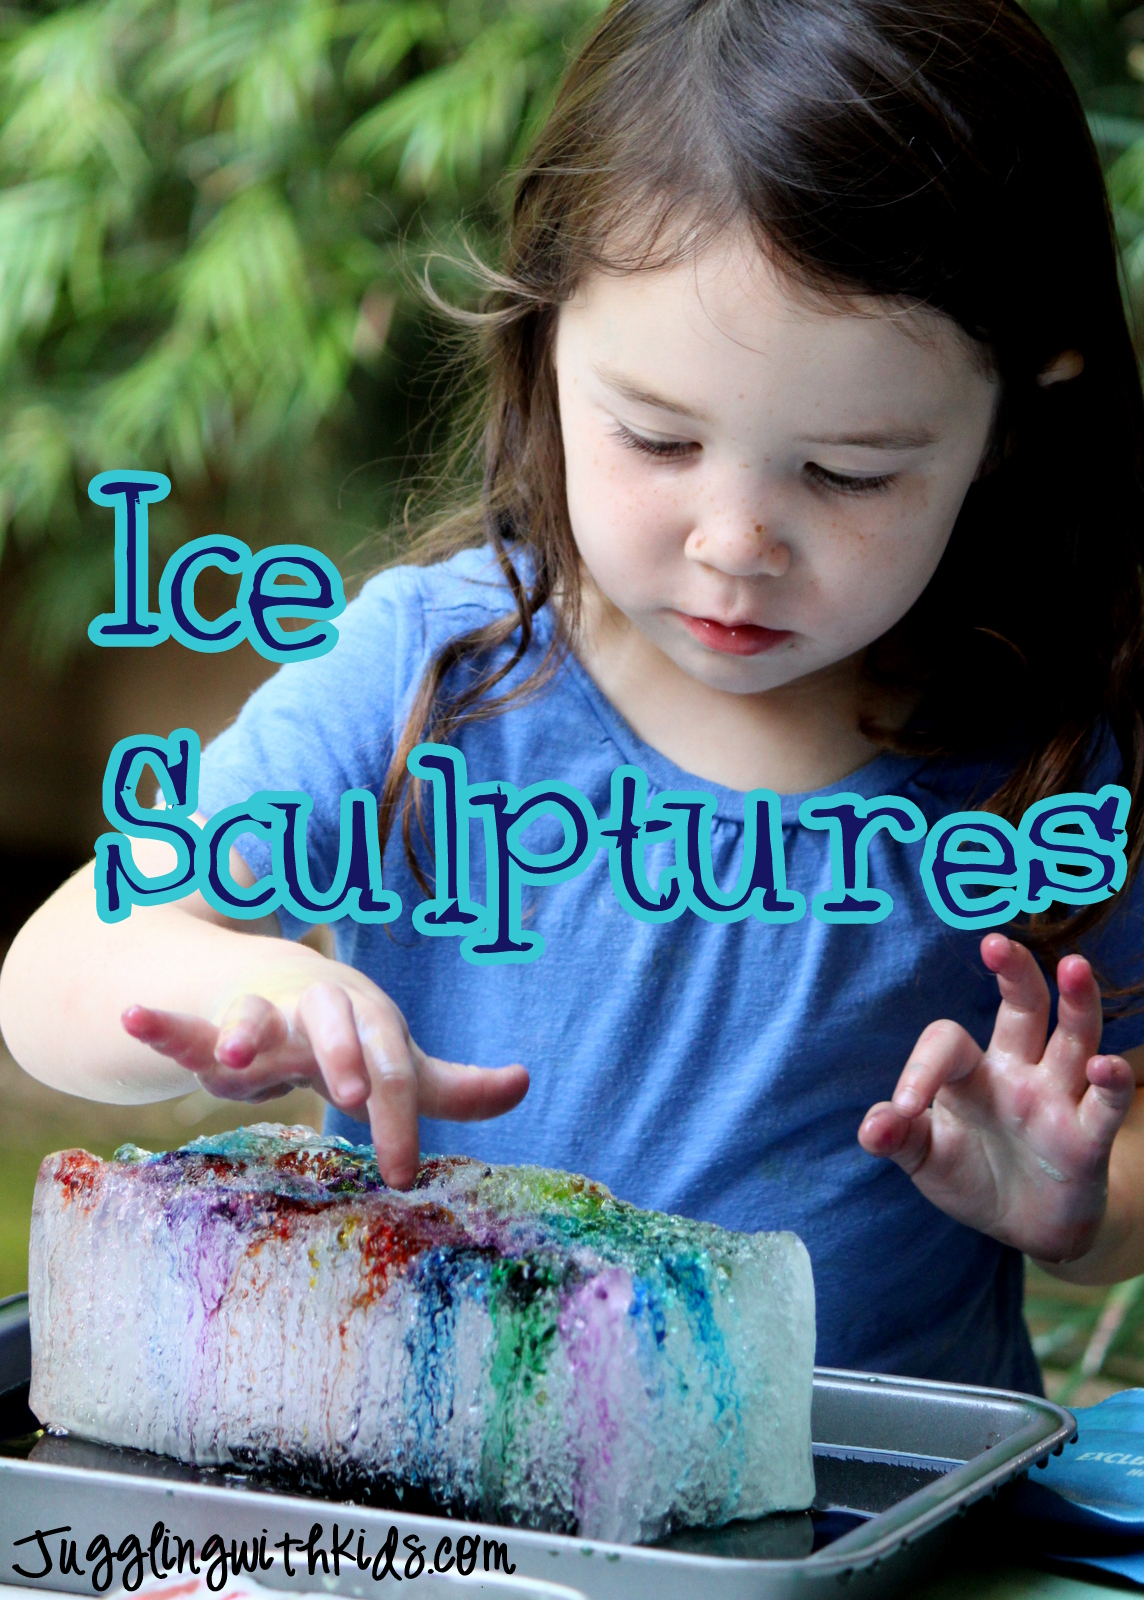 Ice Sculptures Juggling With Kids